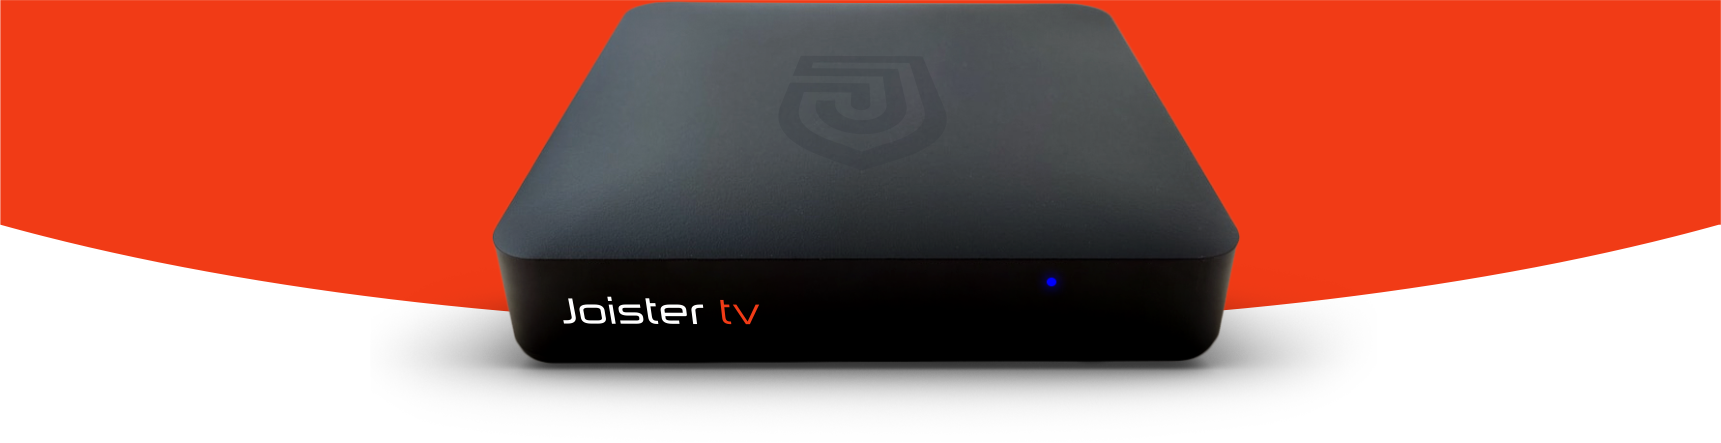 Joister tv box